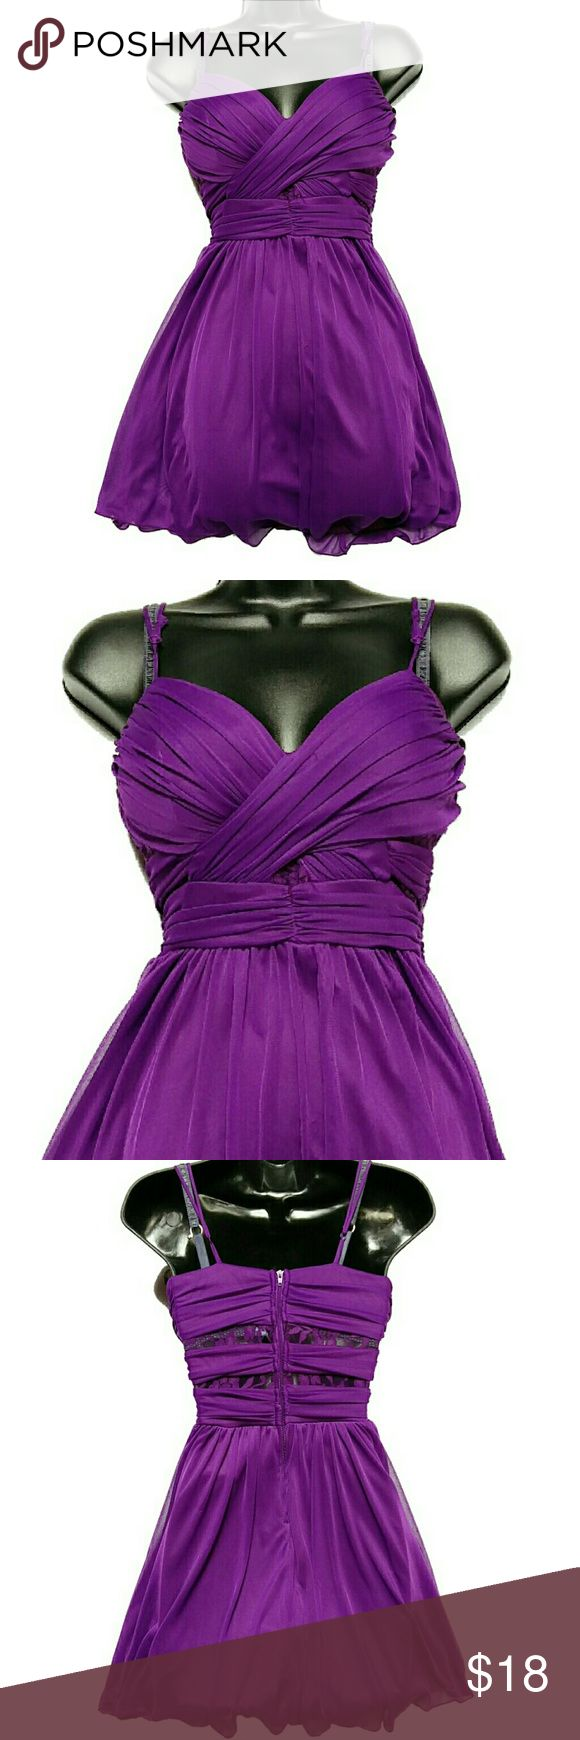 B. SMART Cocktail Party Dress Purple Lace Sz 3/4 B. SMART Cocktail Party Dress. Purple color. Fully lined. Padded bust. Sweetheart neckline with ruching on the bodice. Lace cutouts in between the fabric. Adjustable straps. Rayon and spandex blend fabric. Lining is polyester. Size 3/4.  Approximate measurements of the dress are Bust 30 inches and Length 27 inches. Note three is a small tear in the lace at the back. Sold As-is. Overall, in good condition. B. Smart Dresses